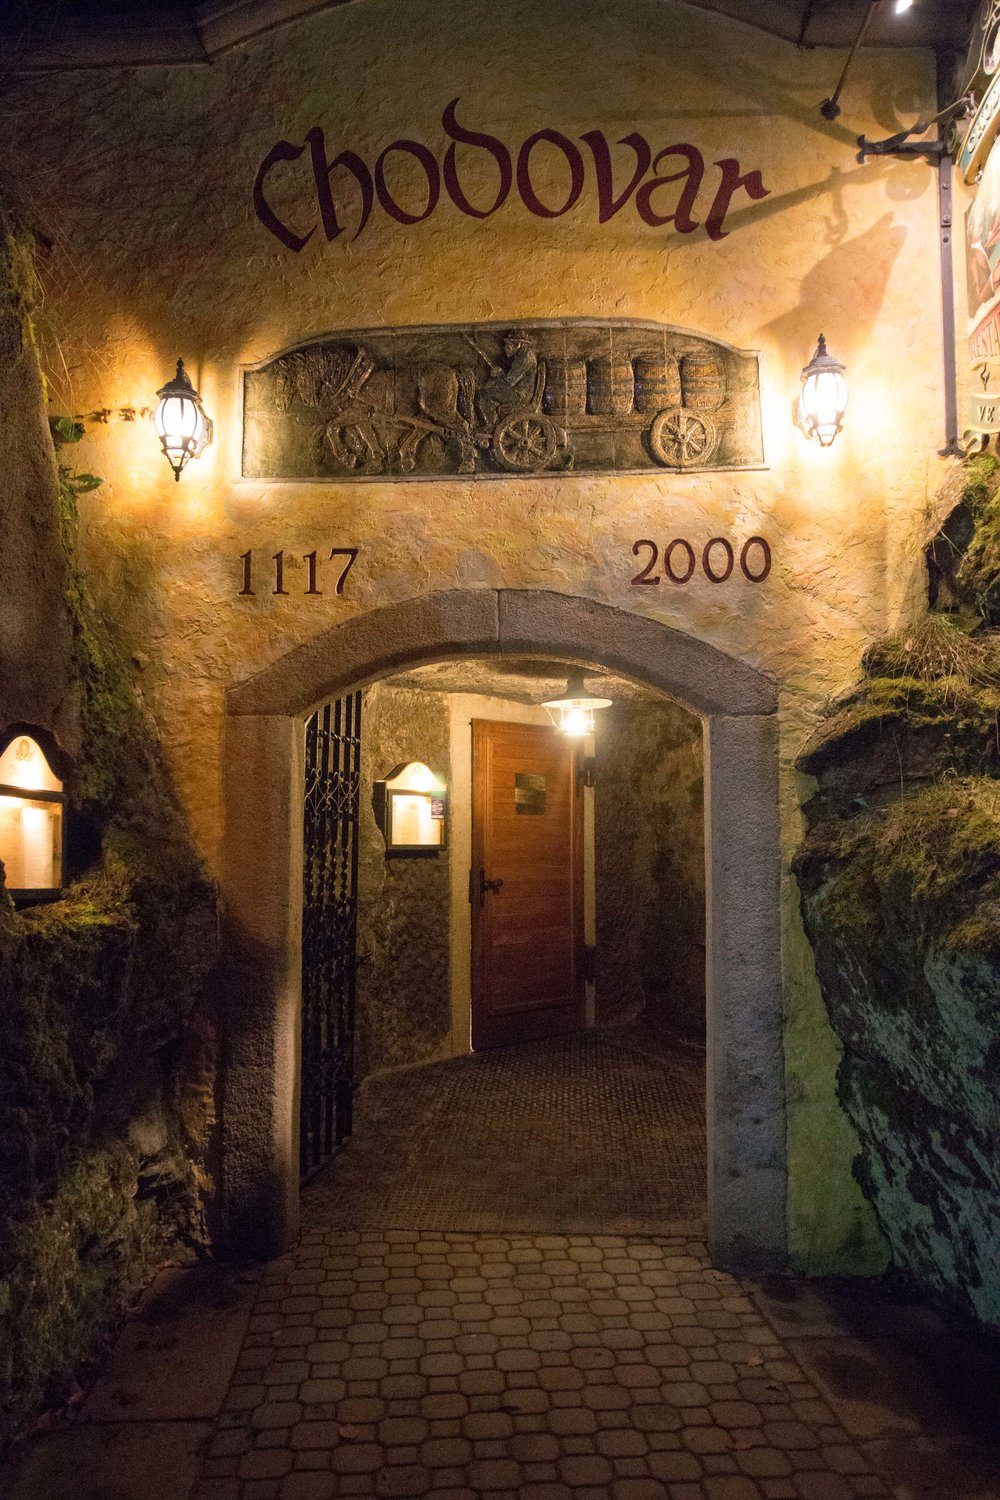 Entrance to the cave restaurant